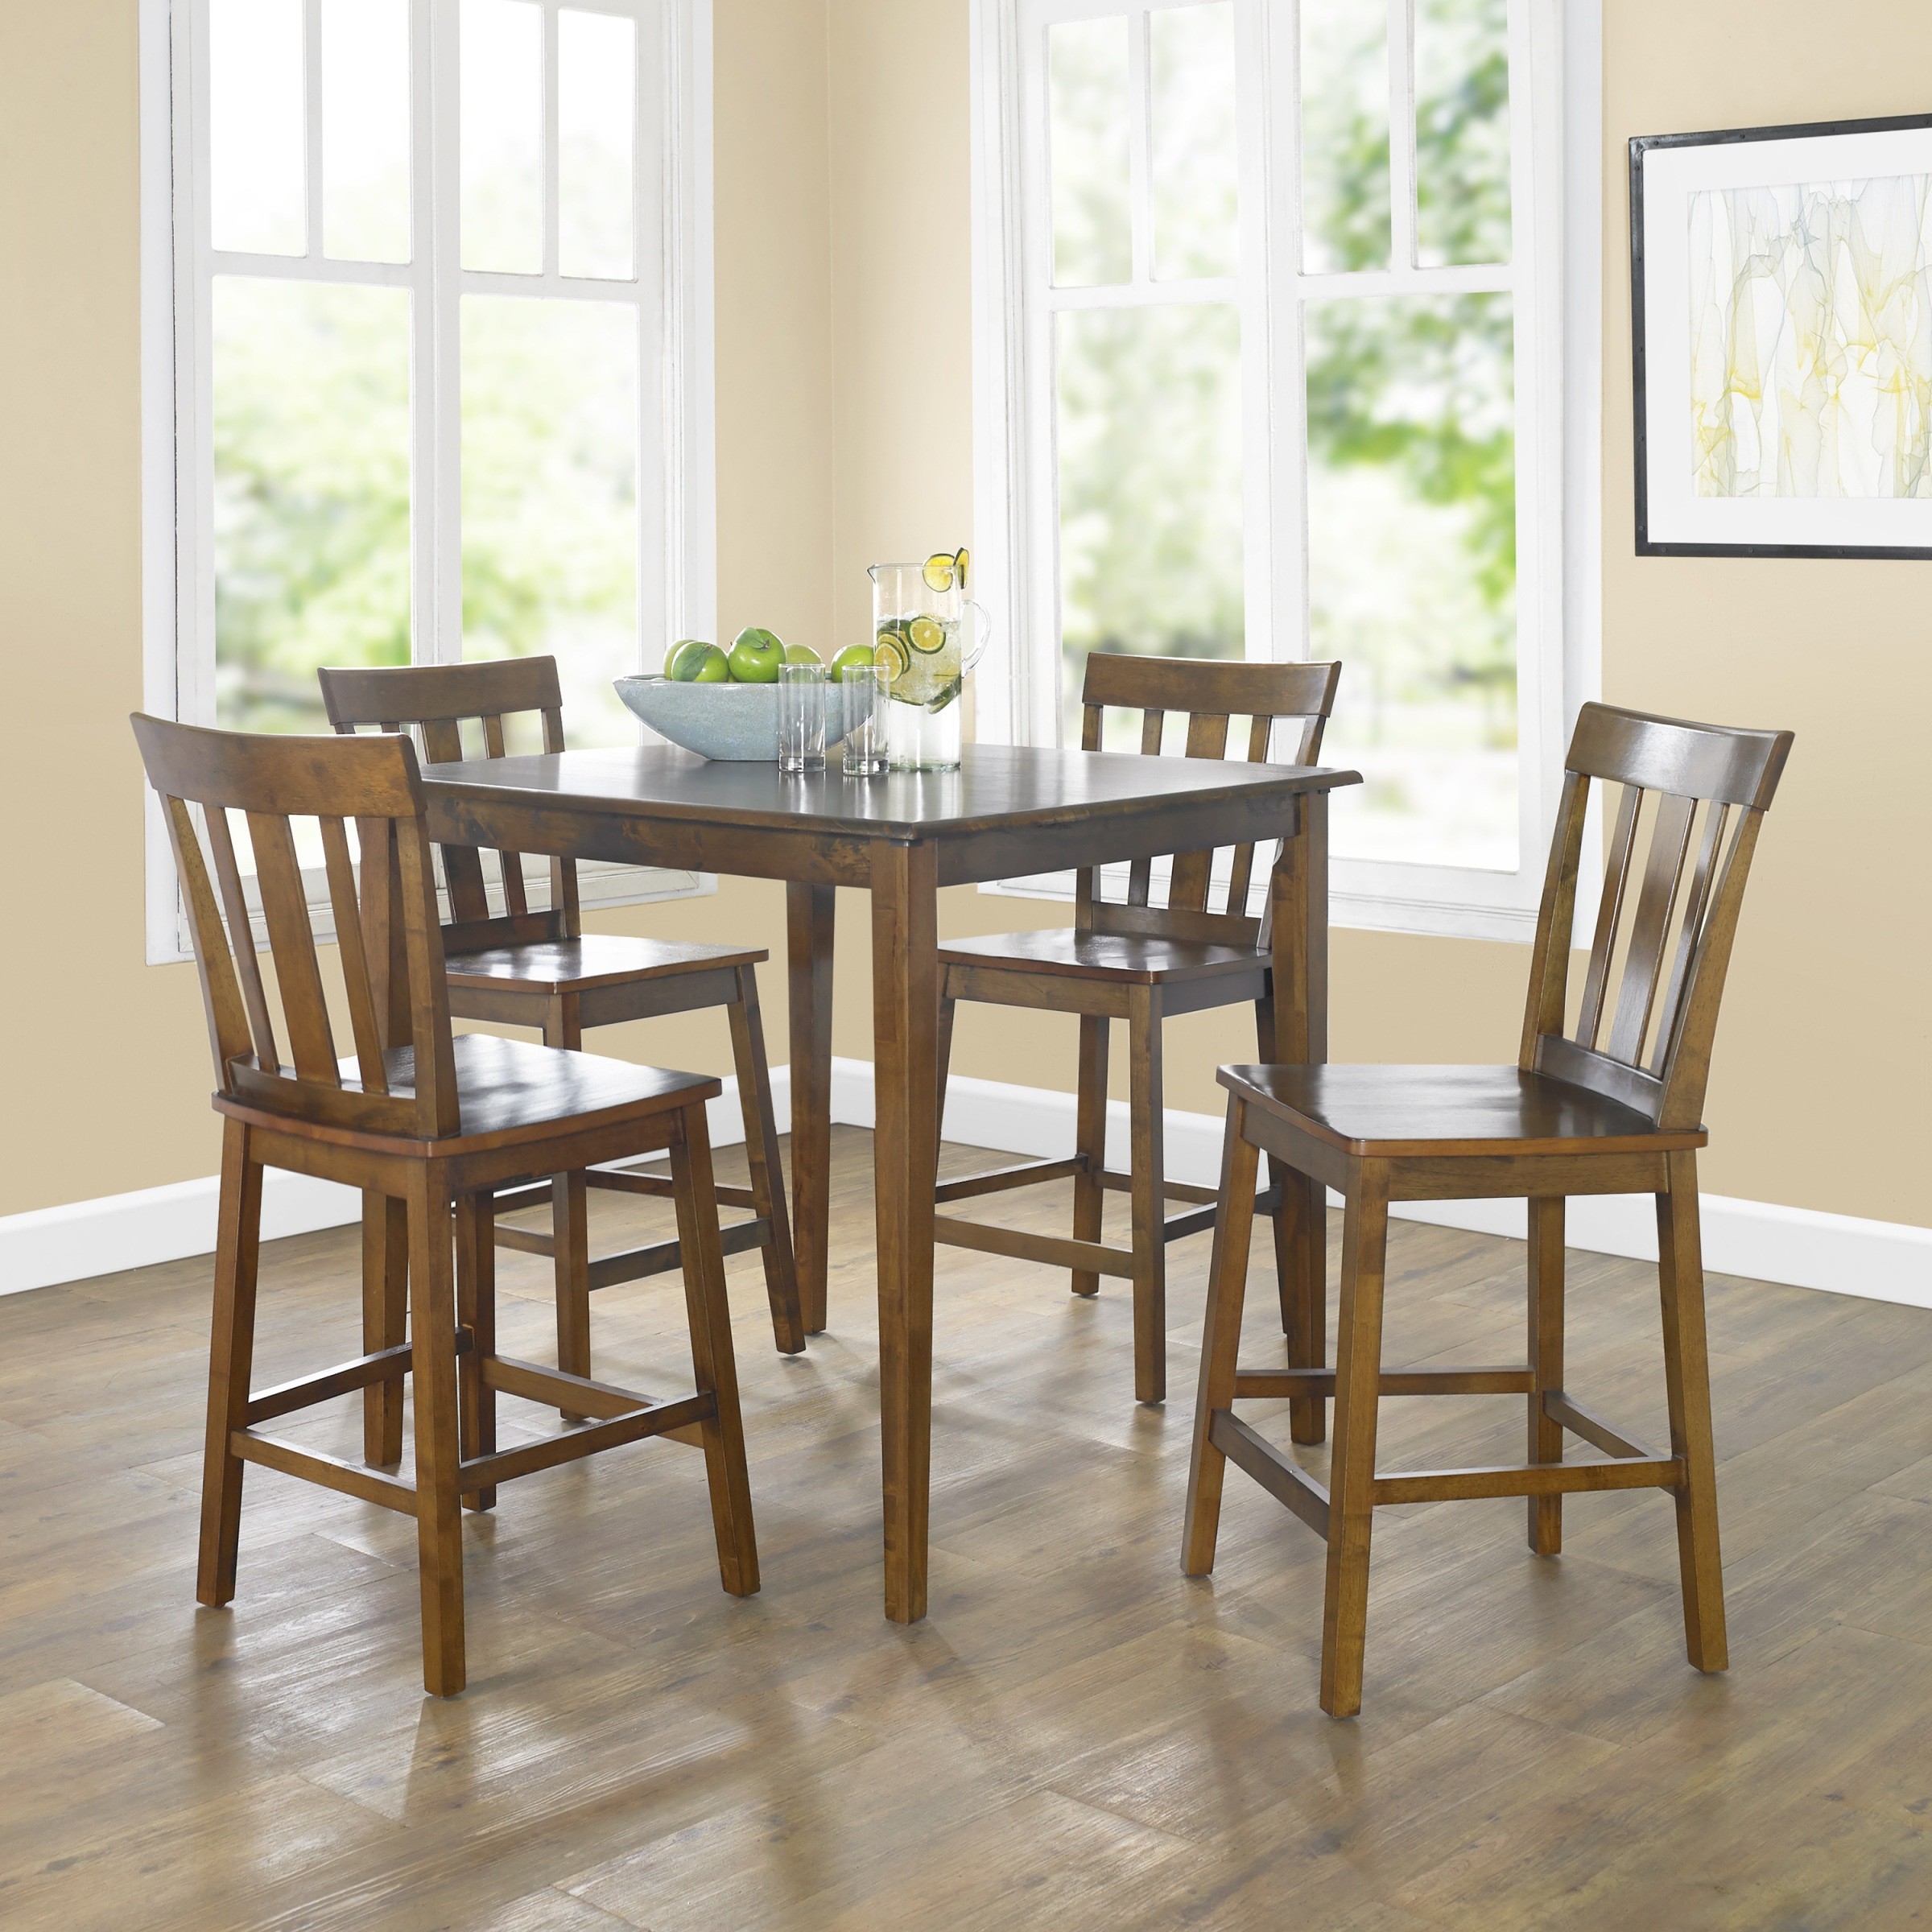 Mainstays 5 Piece Mission Counter Height Dining Set – Walmart Pertaining To Well Known Cargo 5 Piece Dining Sets (View 15 of 25)